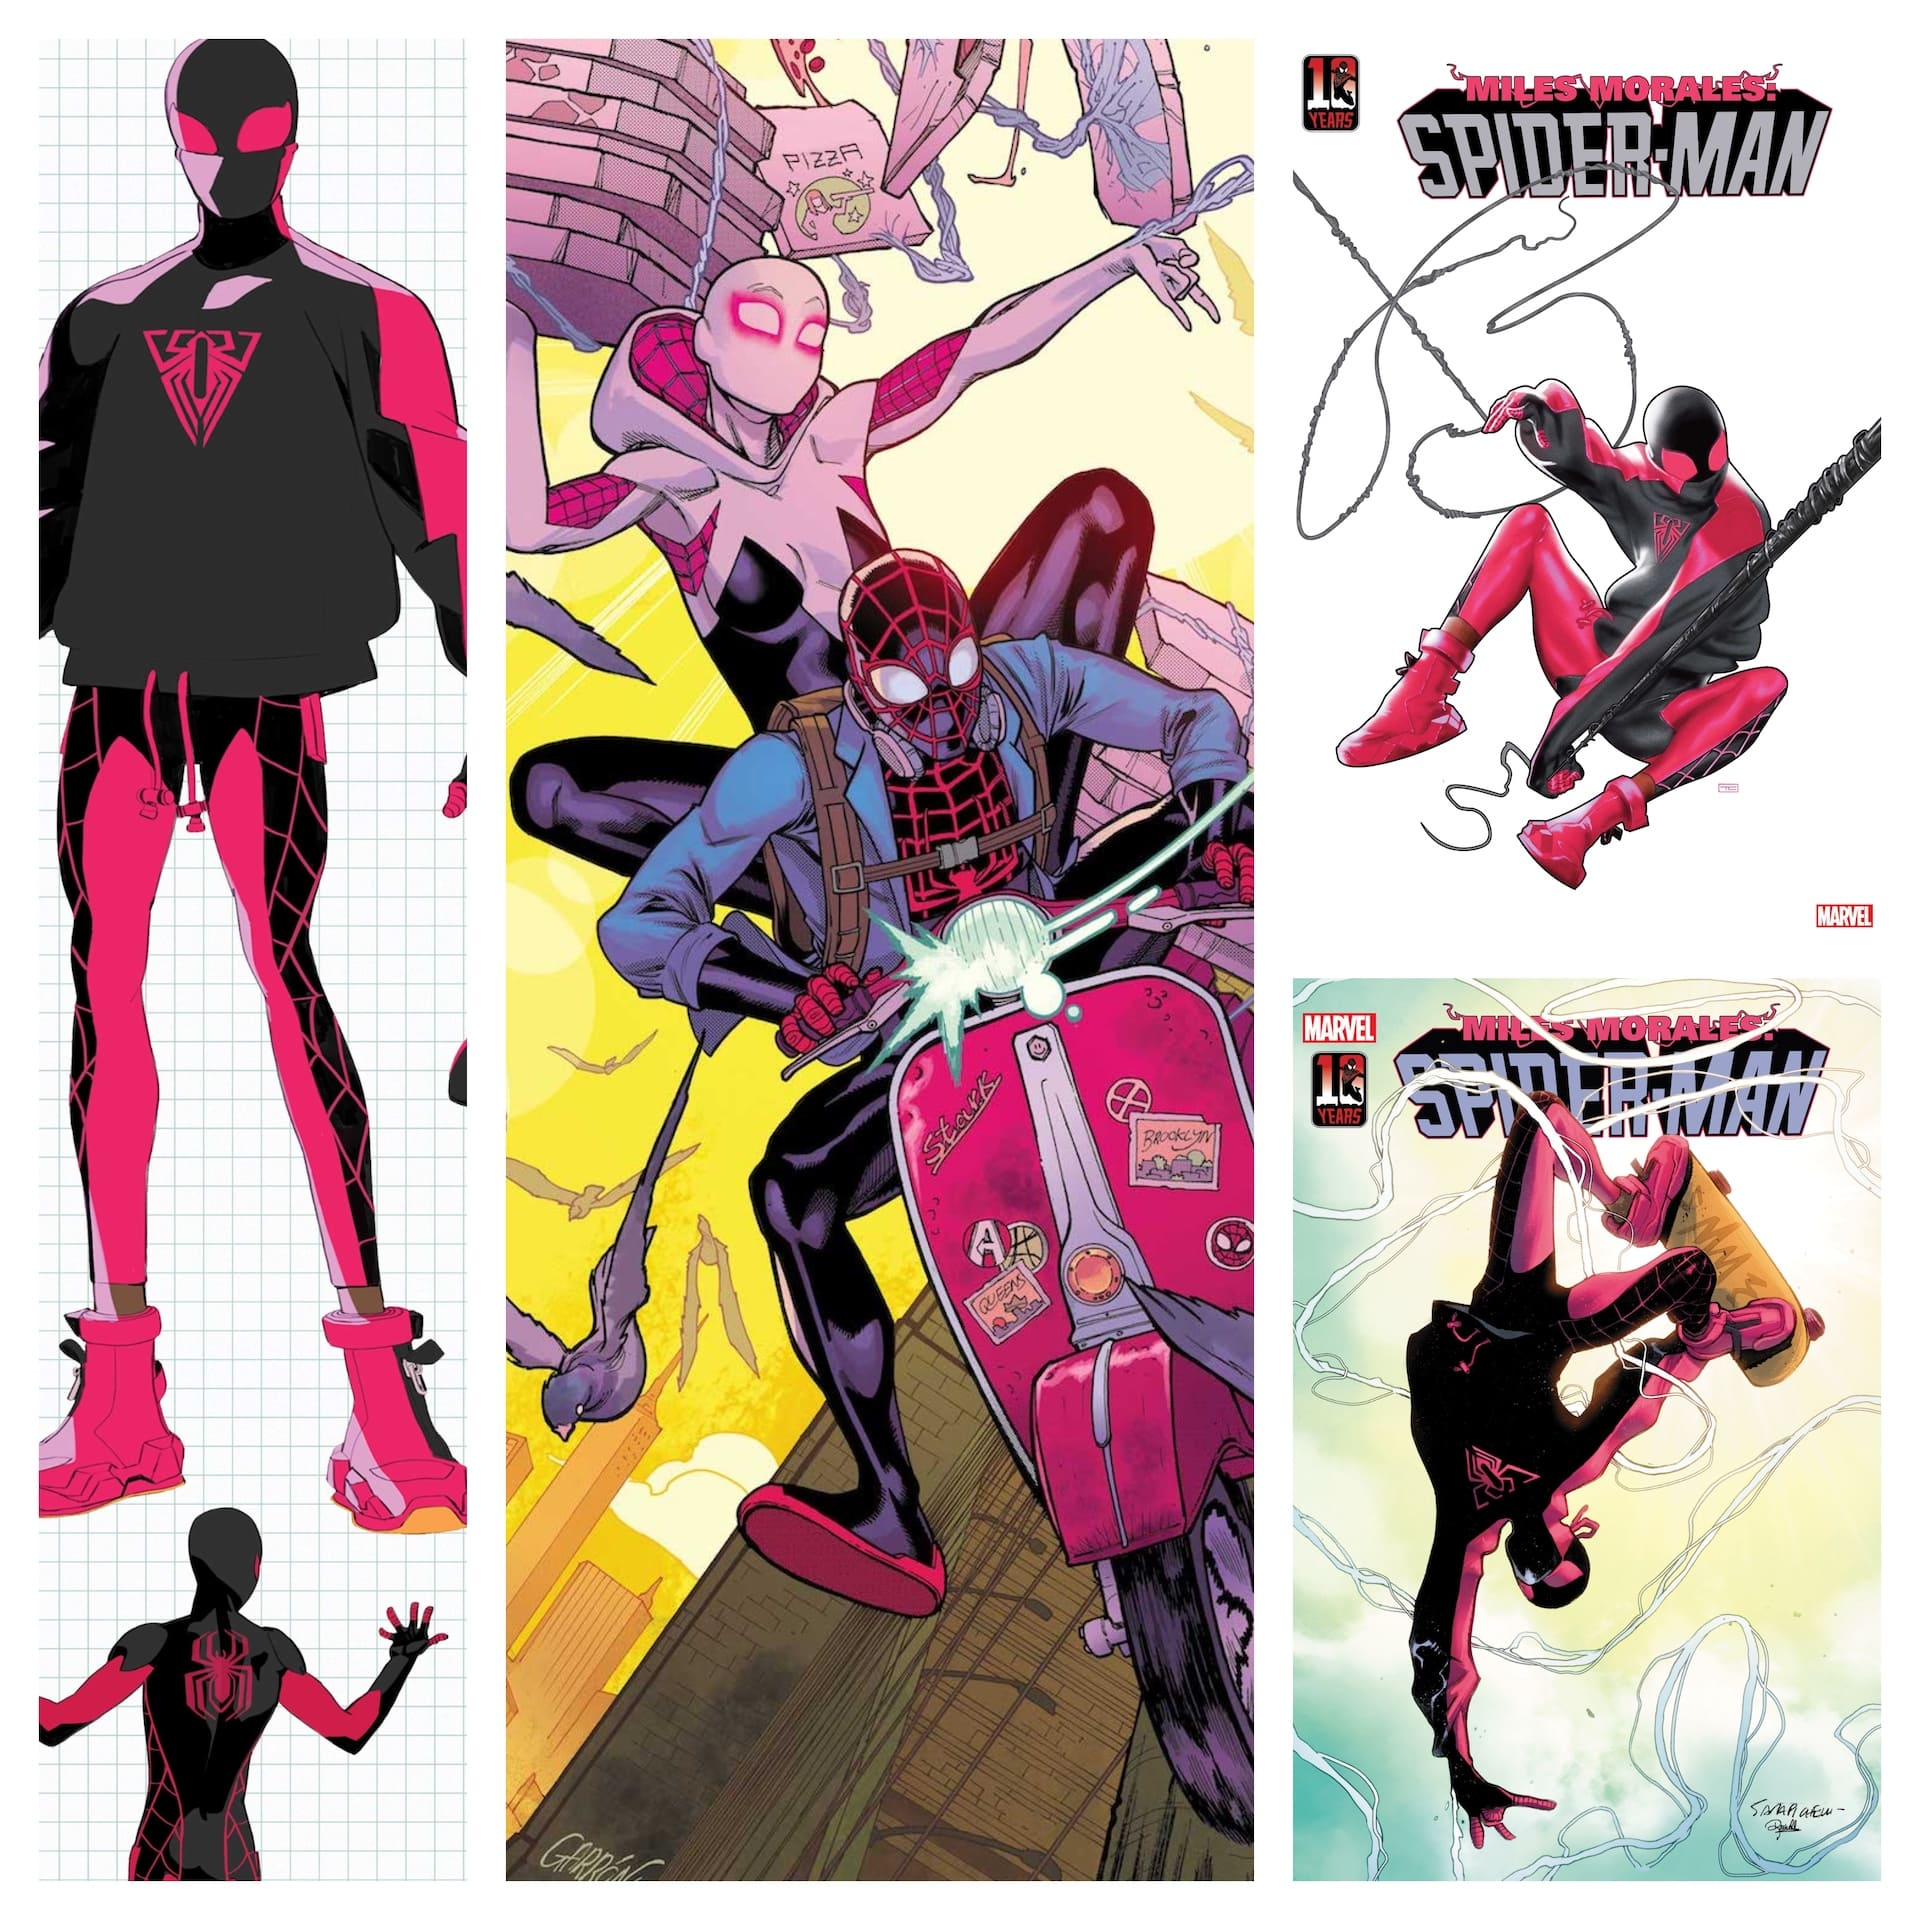 Newly revealed 'Miles Morales: Spider-Man' #30 covers show off the new costume